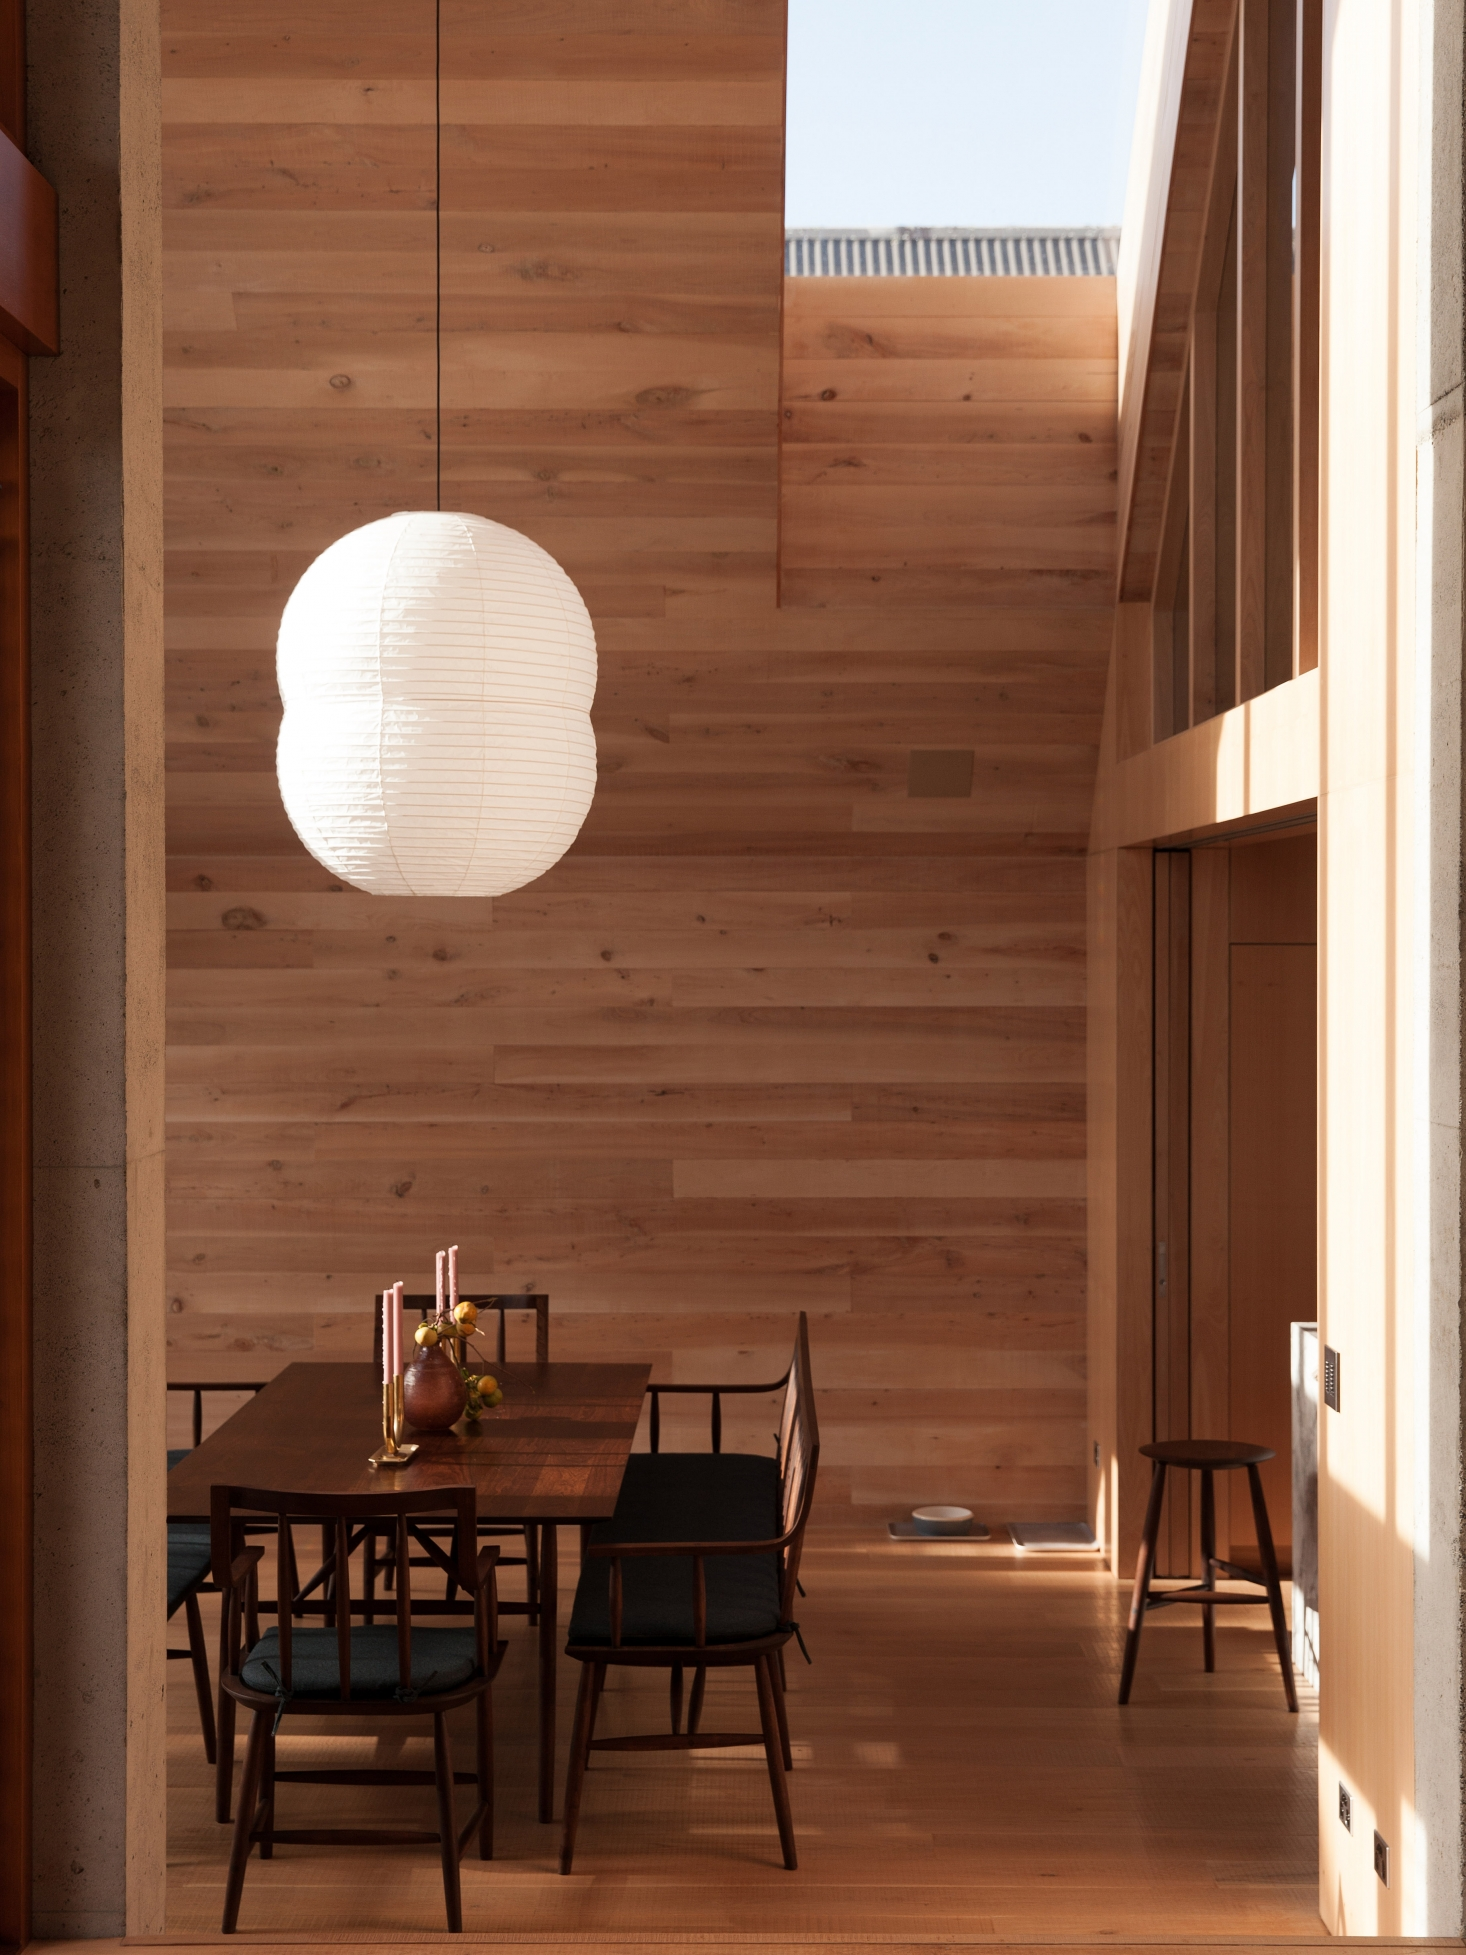 A Soulful, Monastic House in New Zealand, Japanese-Shaker Style Included